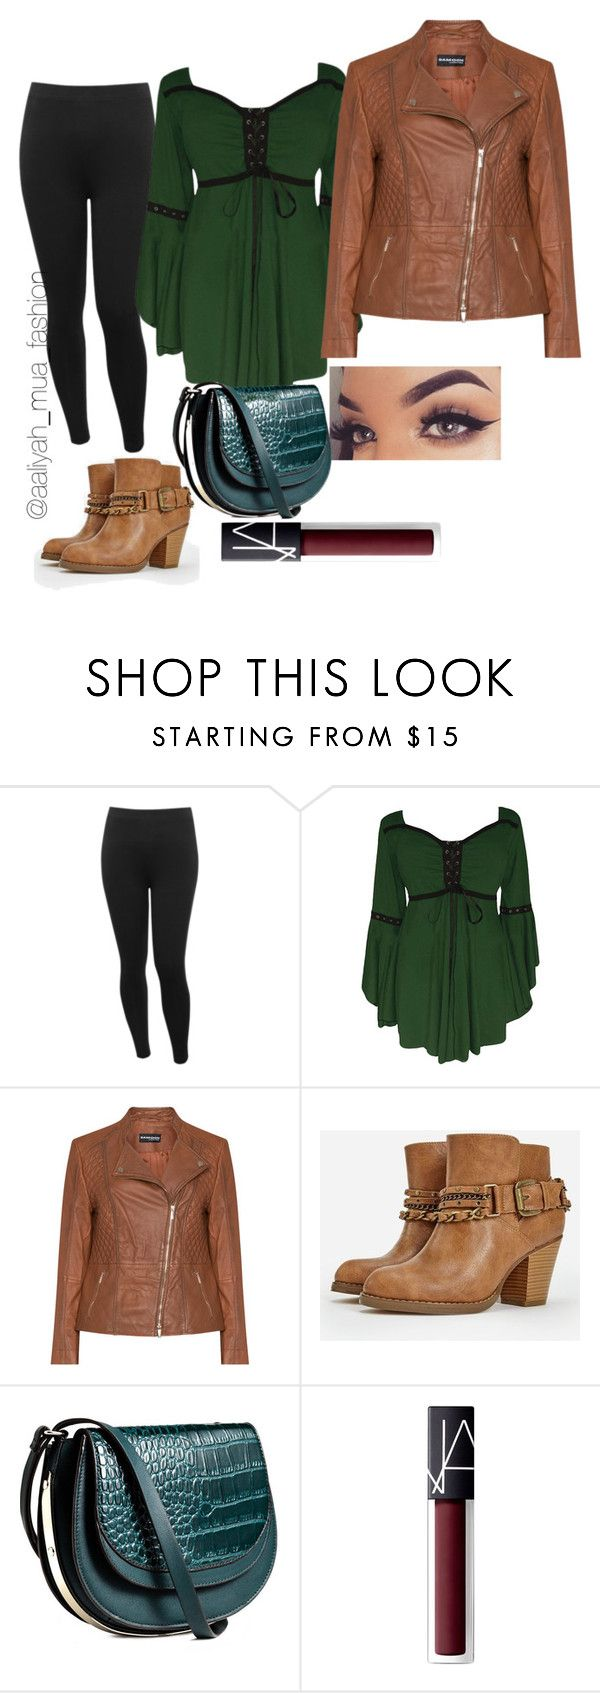 """""""Fall plus size outfit"""" by prrpaola on Polyvore featuring M&Co, Samoon, JustFab, NARS Cosmetics and plus size clothing"""